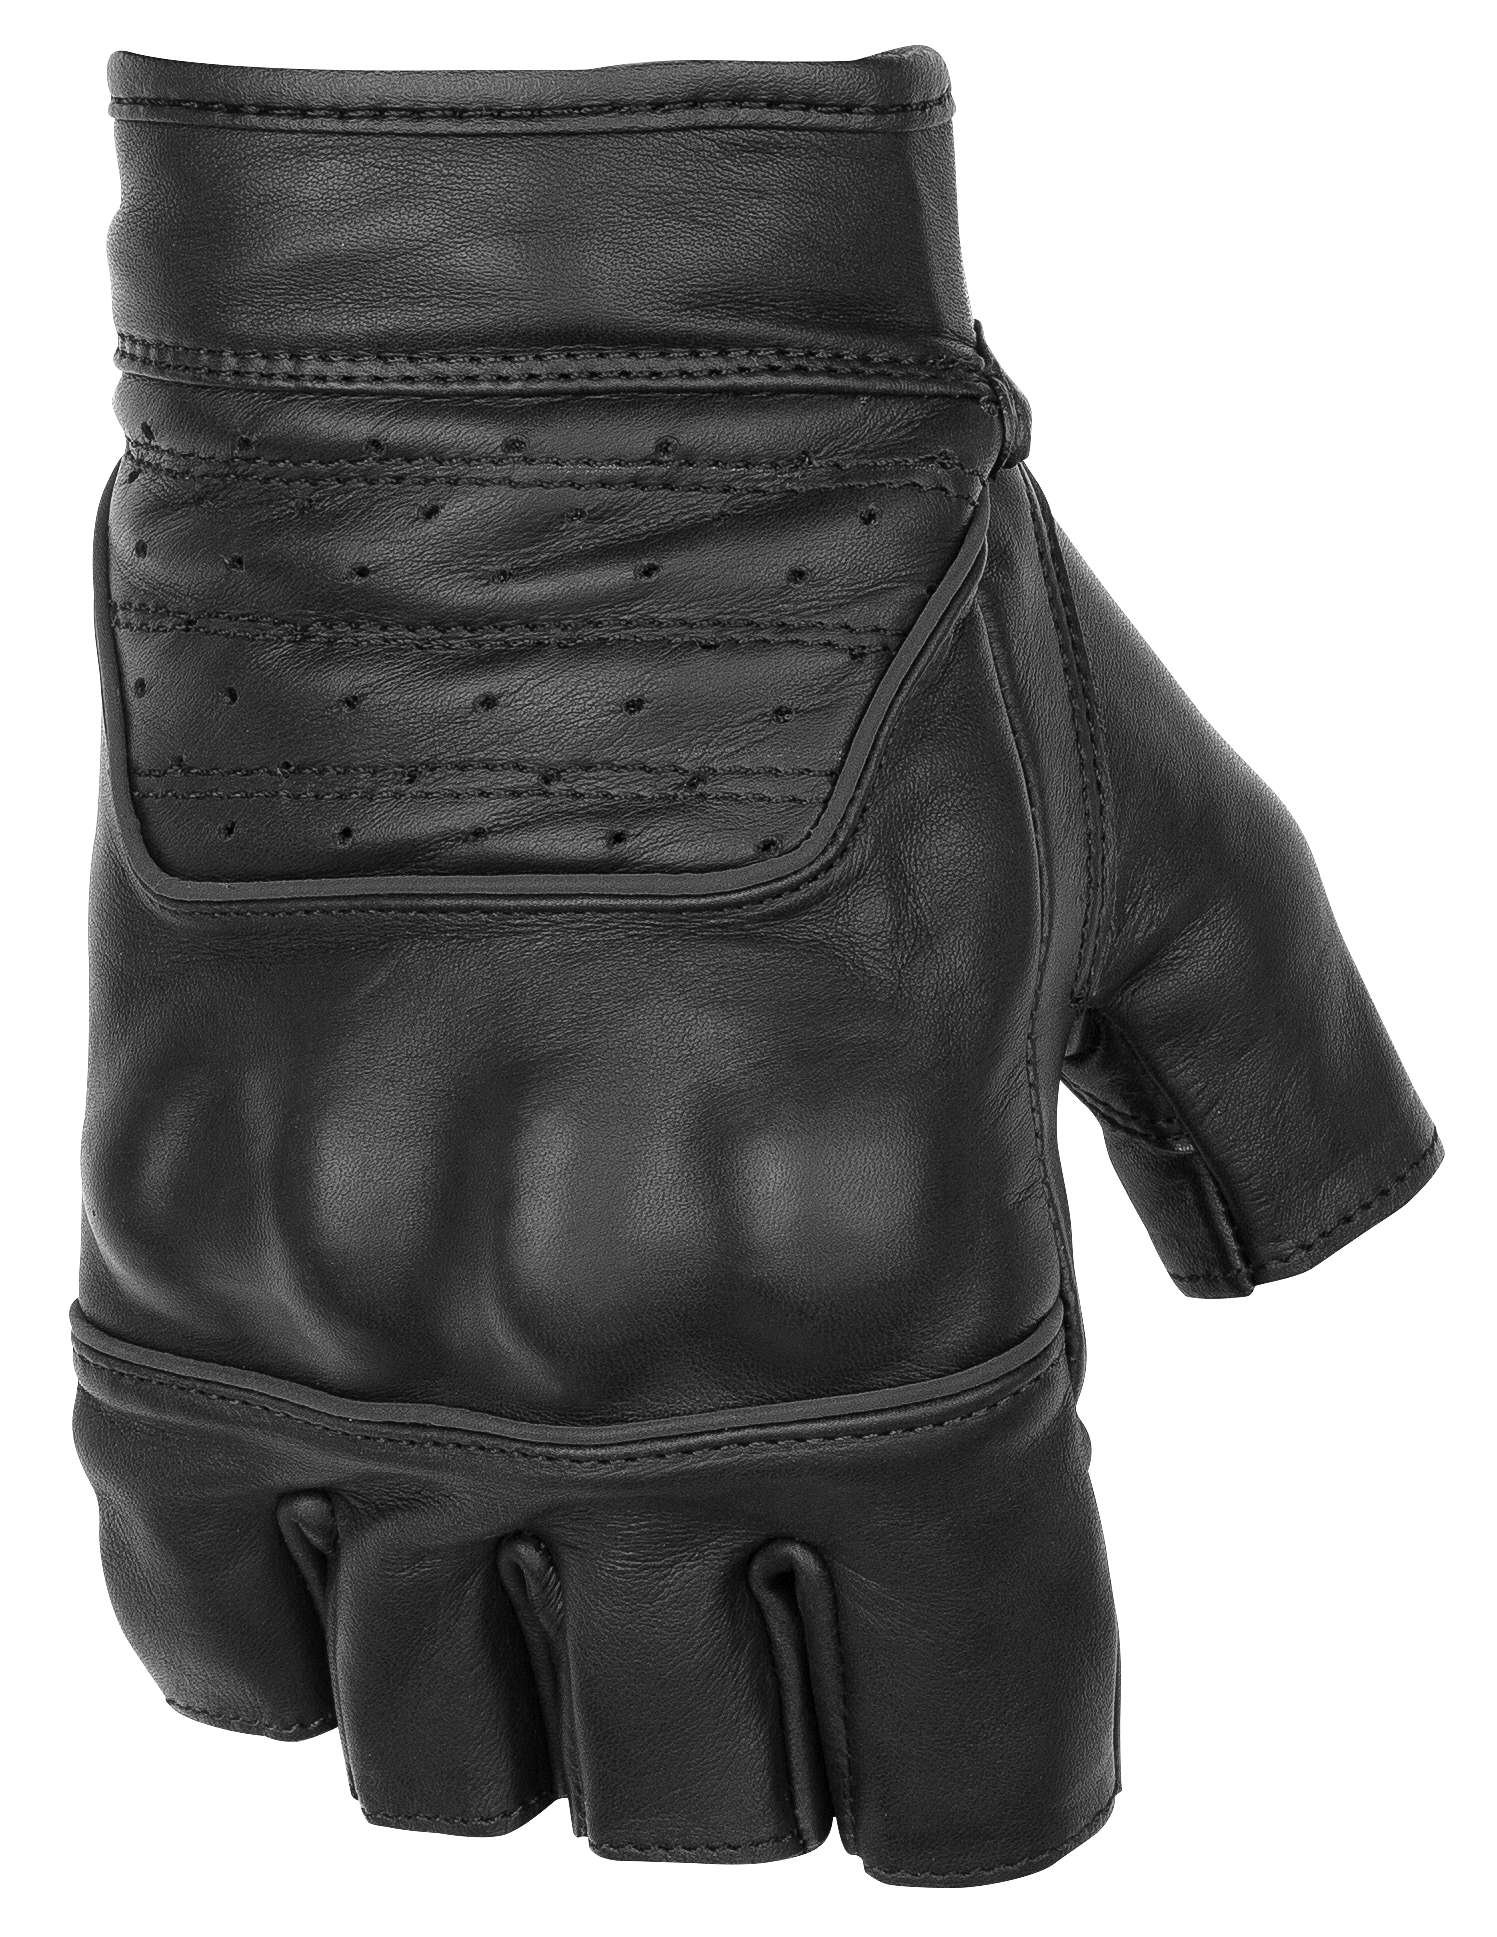 Black Brand Men's Leather Brawler Shorty Motorcycle Gloves (Black, X-Large)